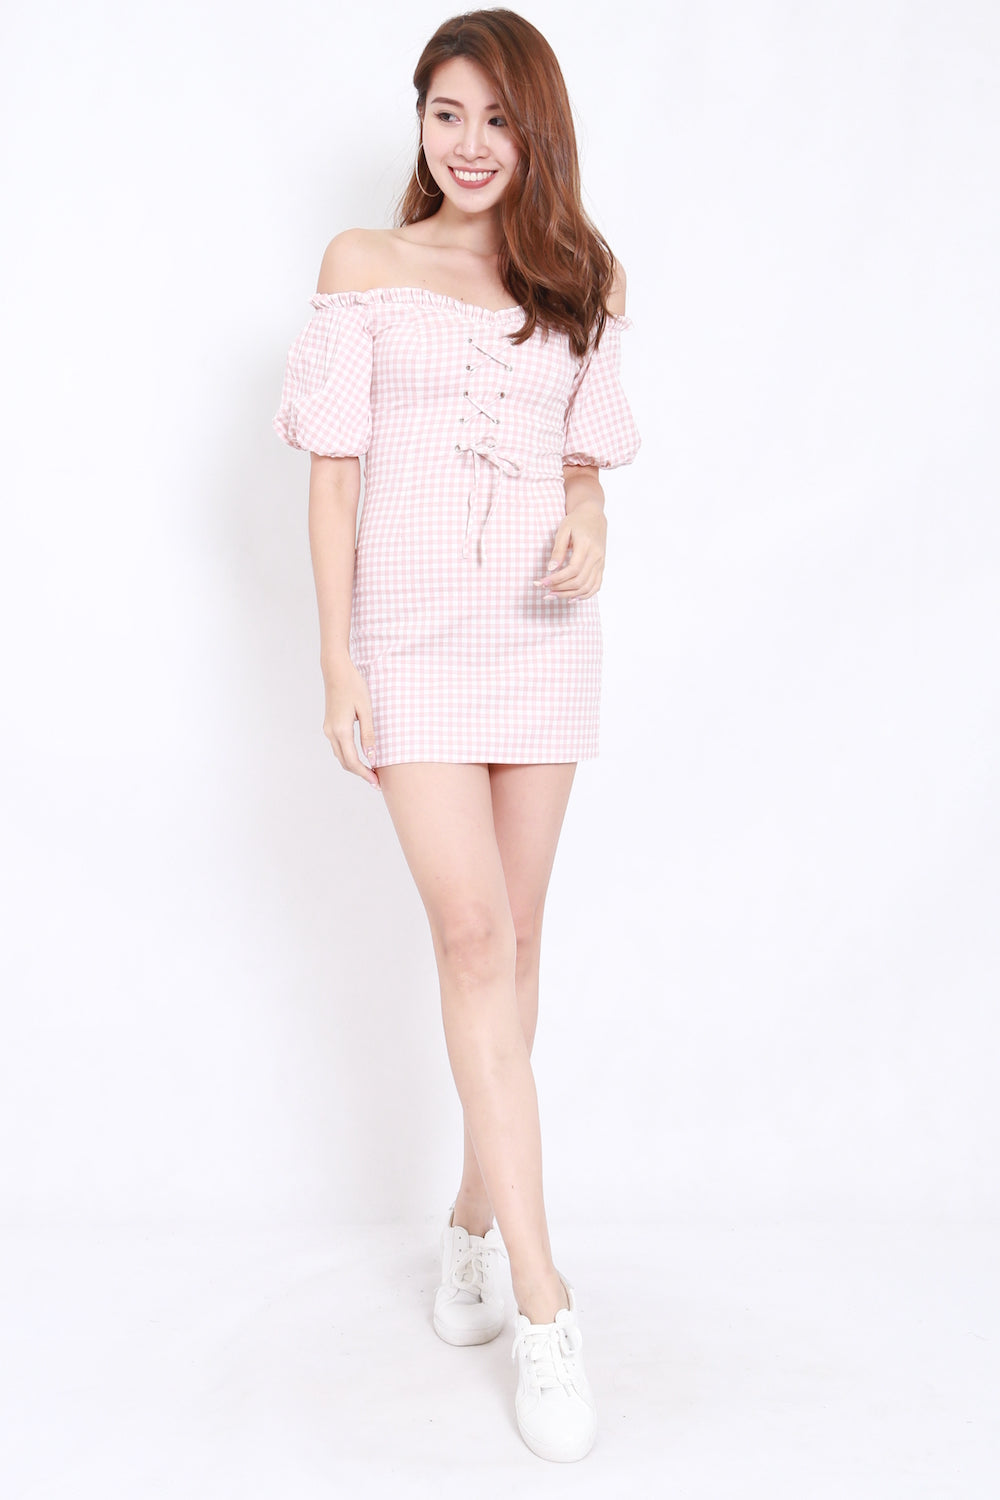 Sweetheart Gingham Offsie Dress